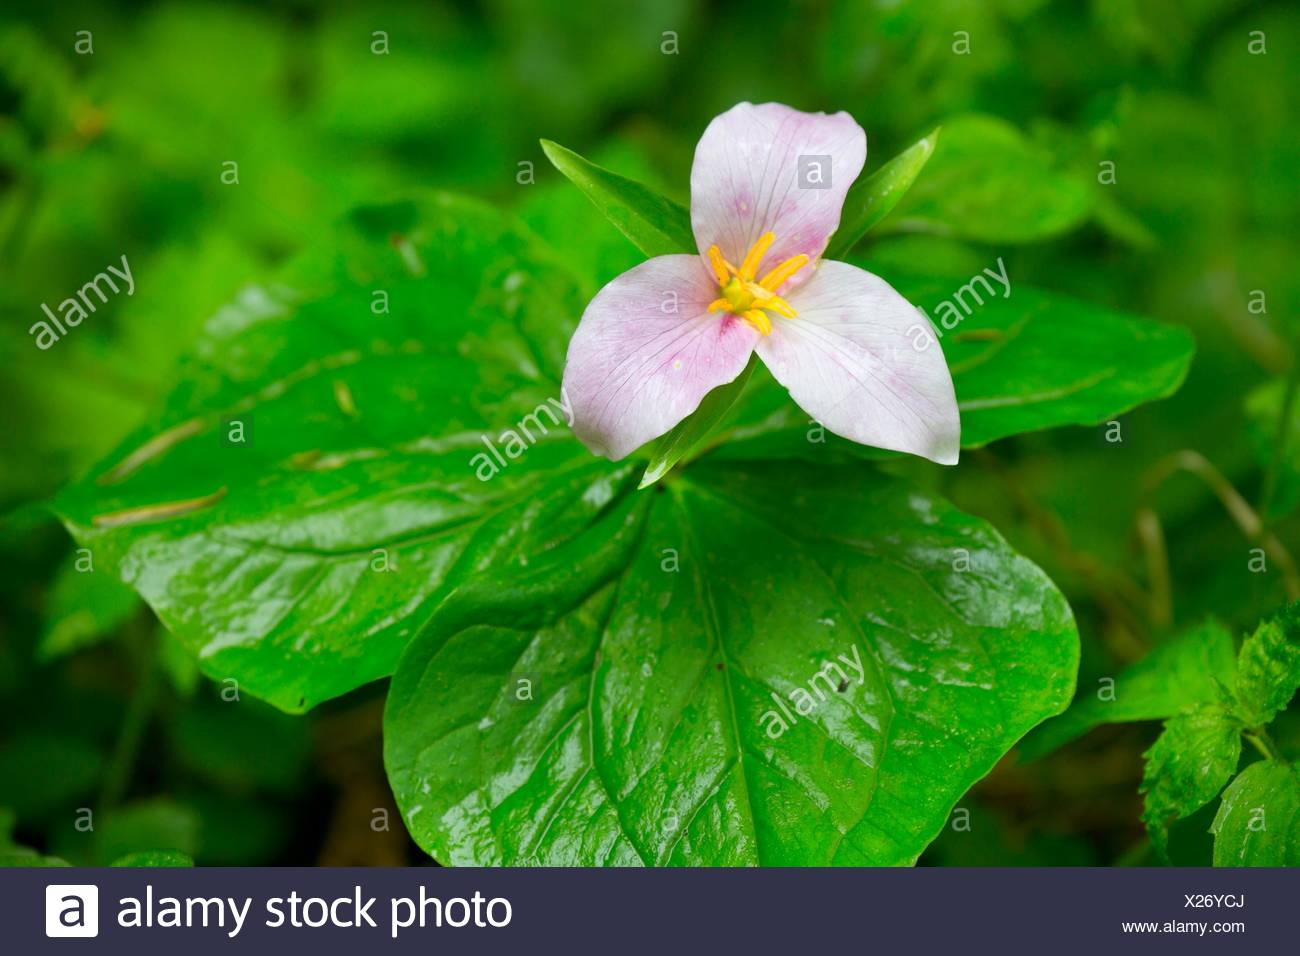 Western trillium in bloom along Harris Ranch Trail, Siuslaw National Forest, Oregon. - Stock Image